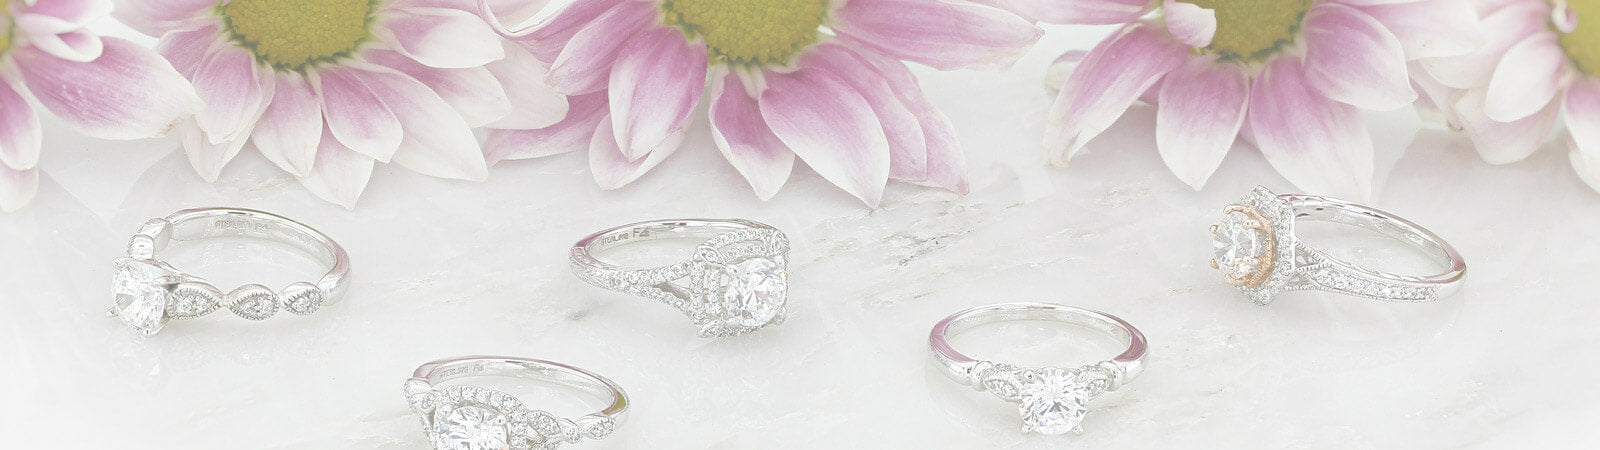 Engagement Rings with Side Stones